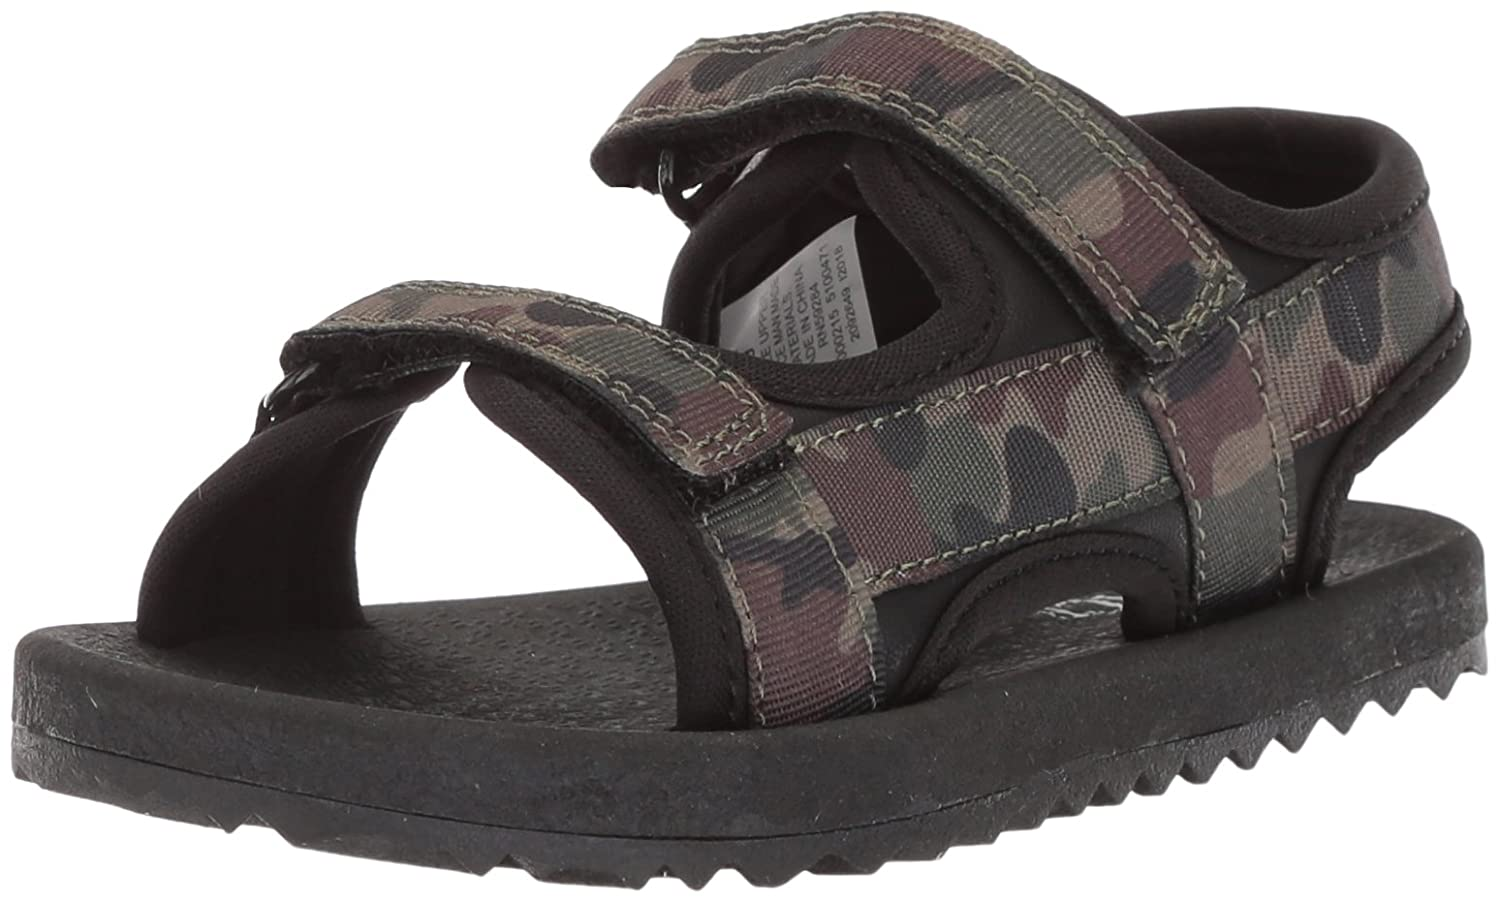 The Children's Place Kids' Tb Fin Sandal Flat The Children' s Place